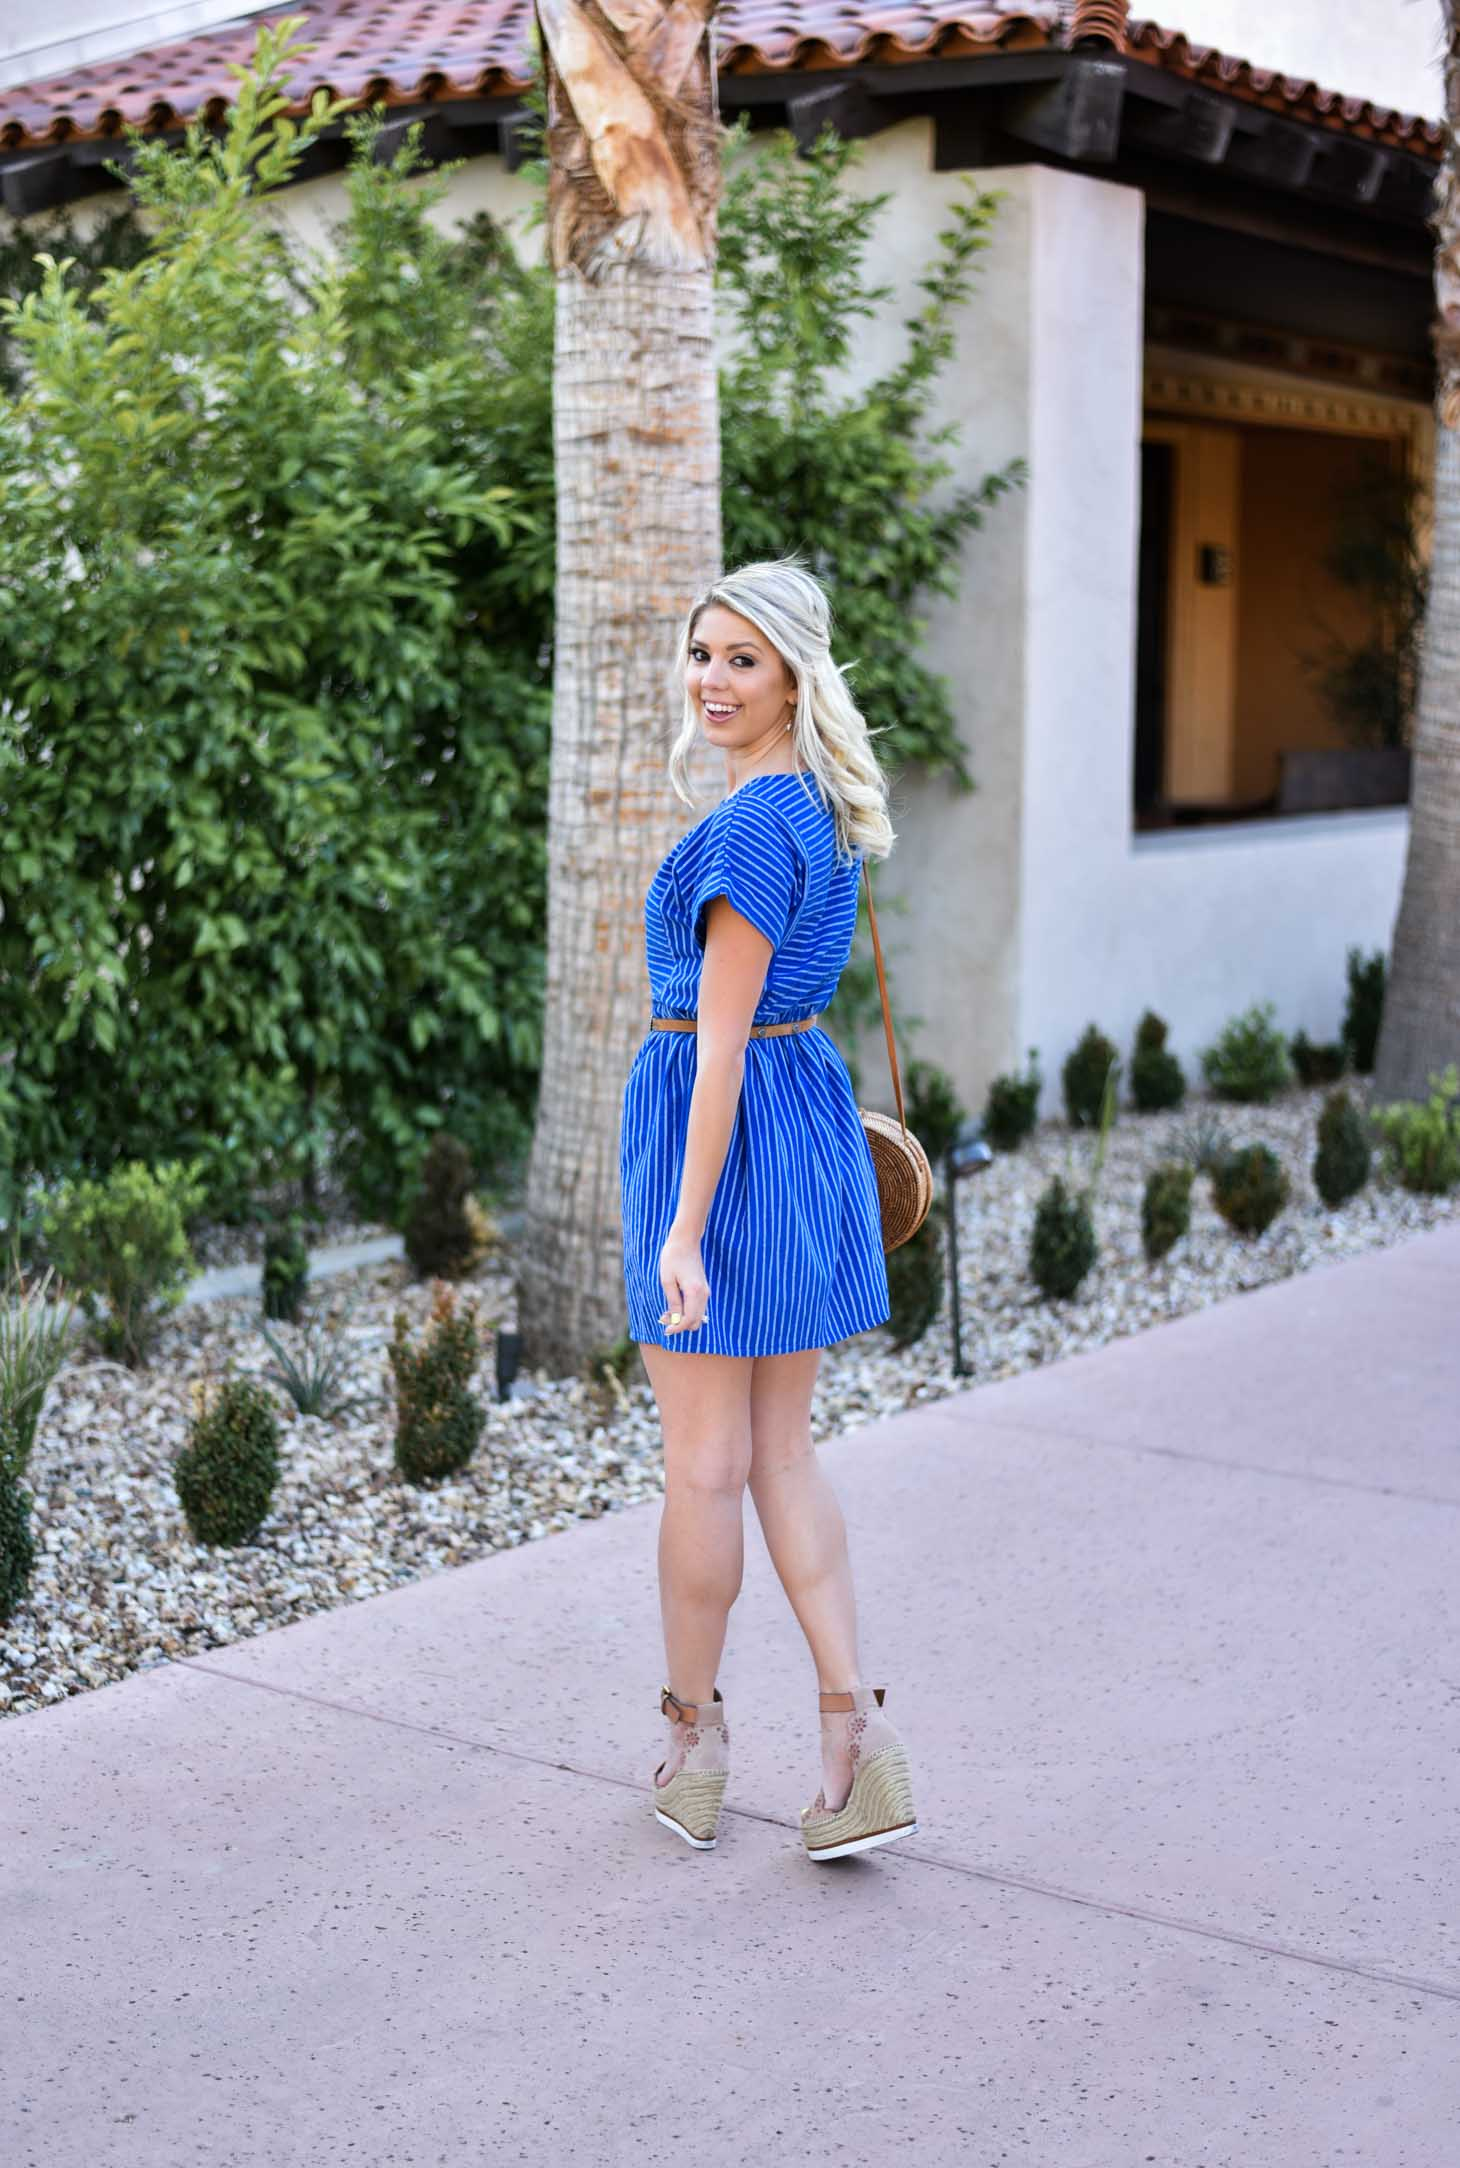 Erin Elizabeth of Wink and a Twirl in Spring Striped Blue Dress